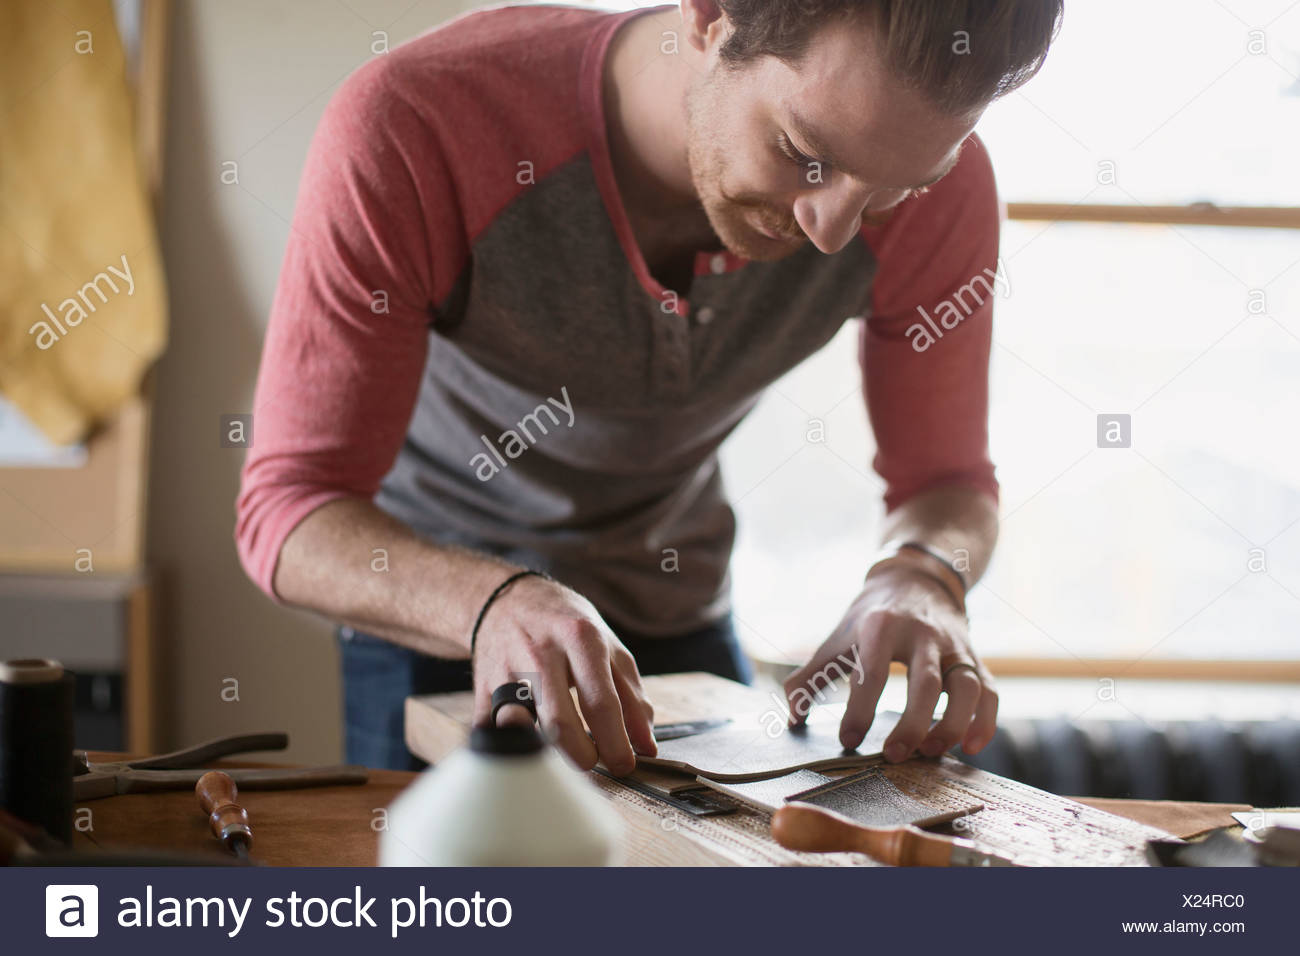 Young man making leather belts at workshop - Stock Image